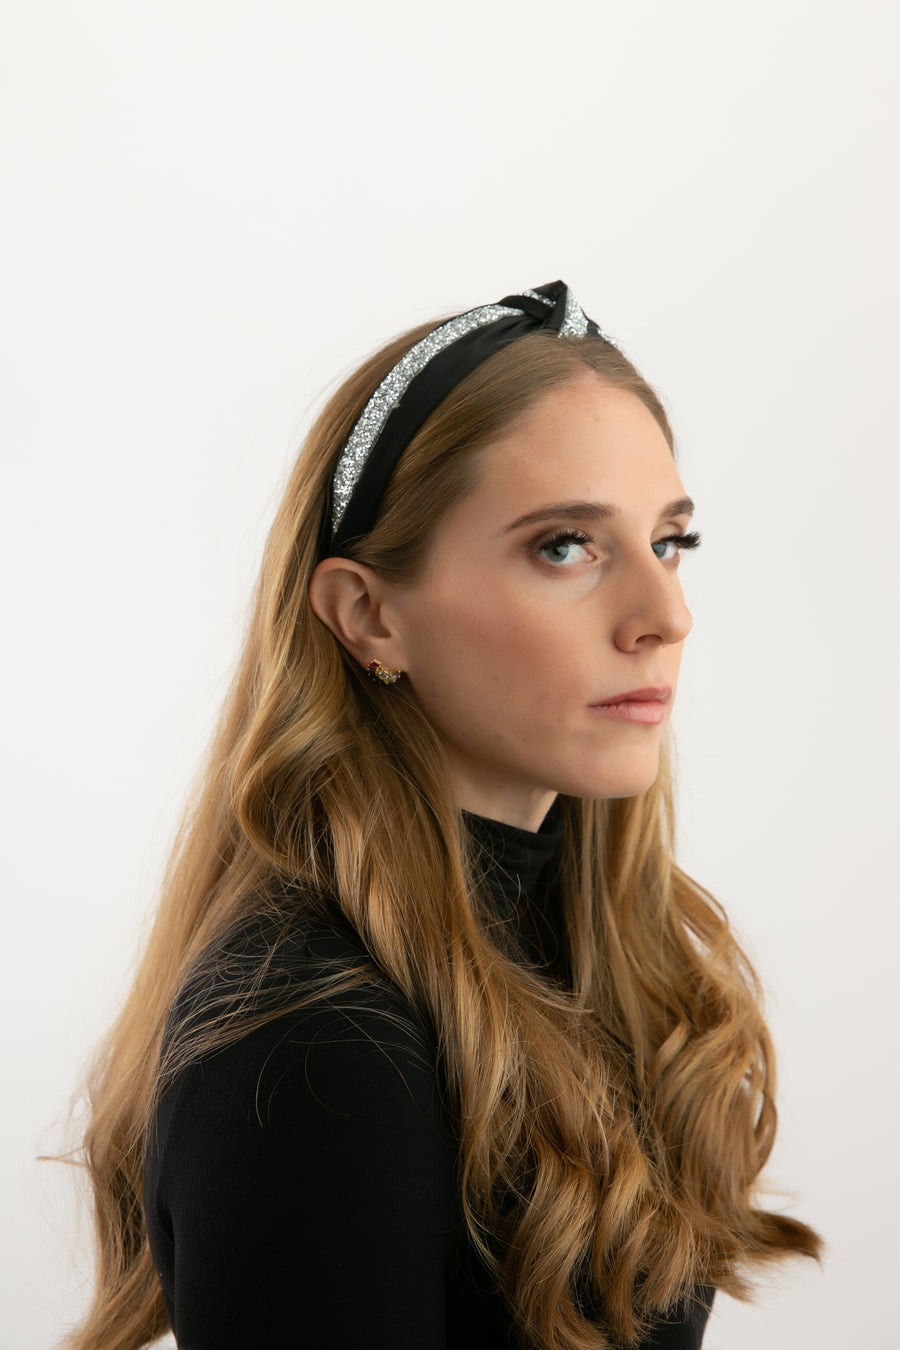 Salena Knotted Headband